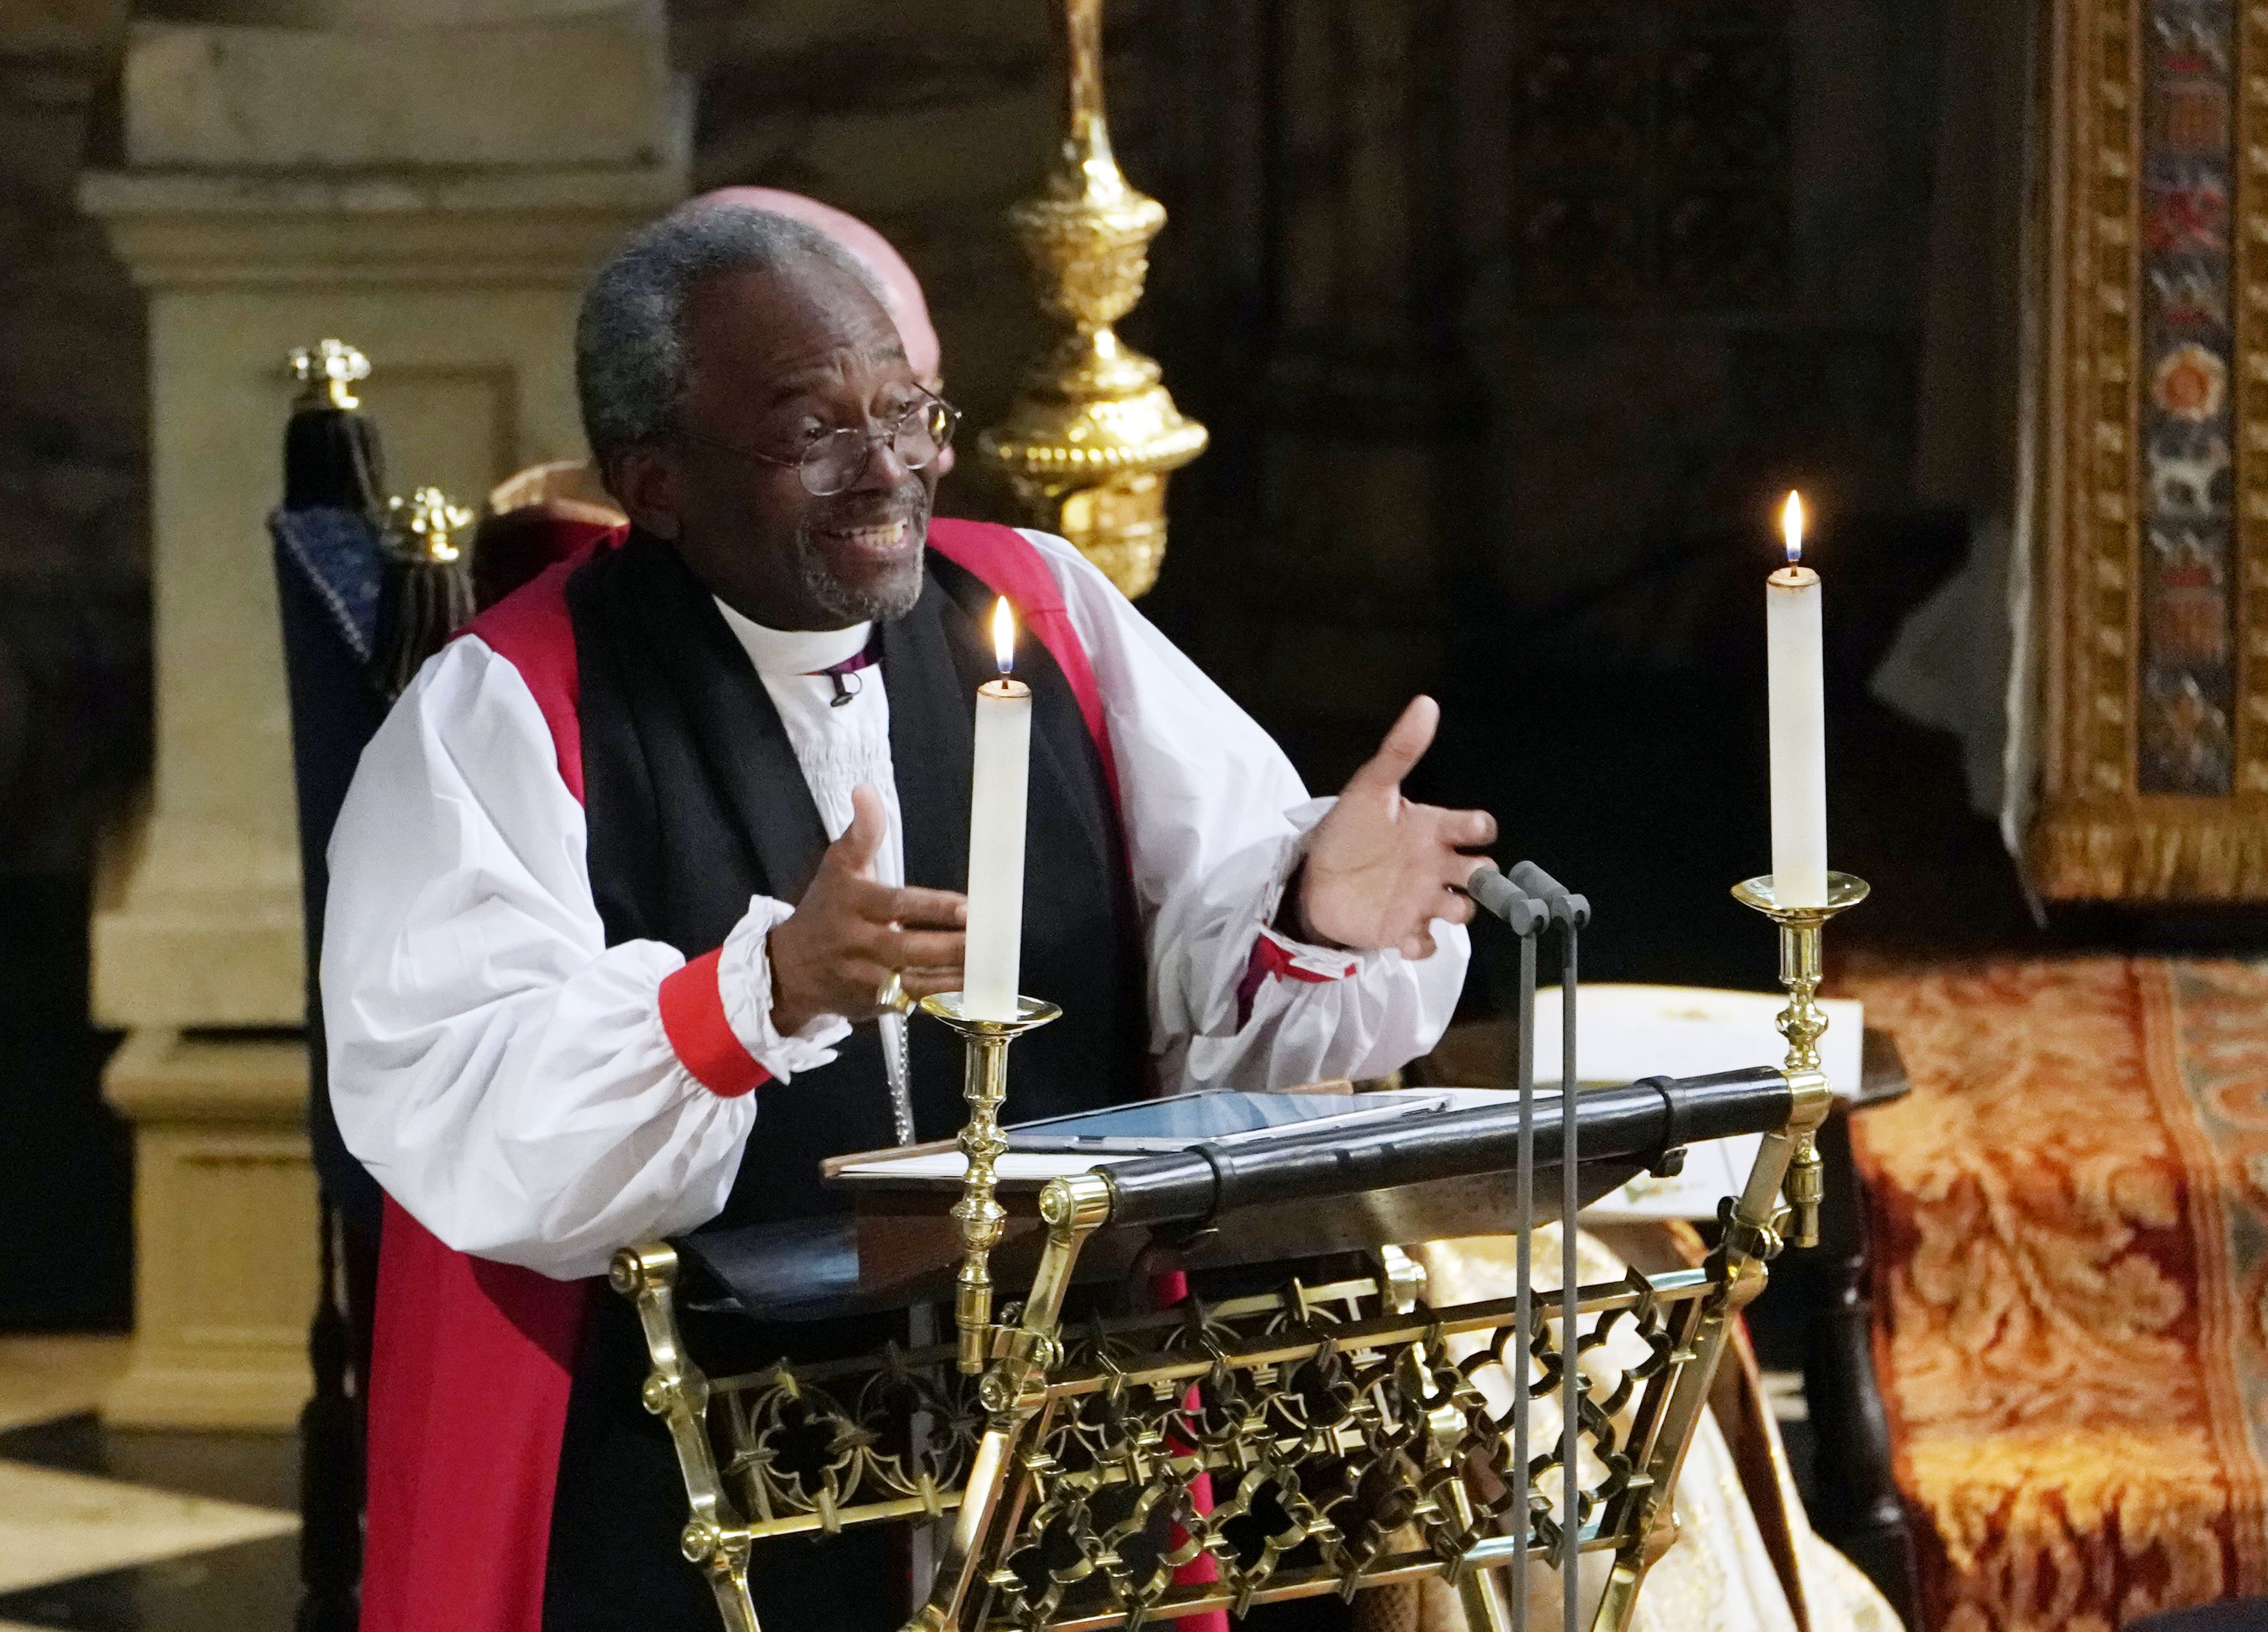 https://hips.hearstapps.com/hmg-prod.s3.amazonaws.com/images/2018-royal-wedding-michael-curry-1526746602.jpg